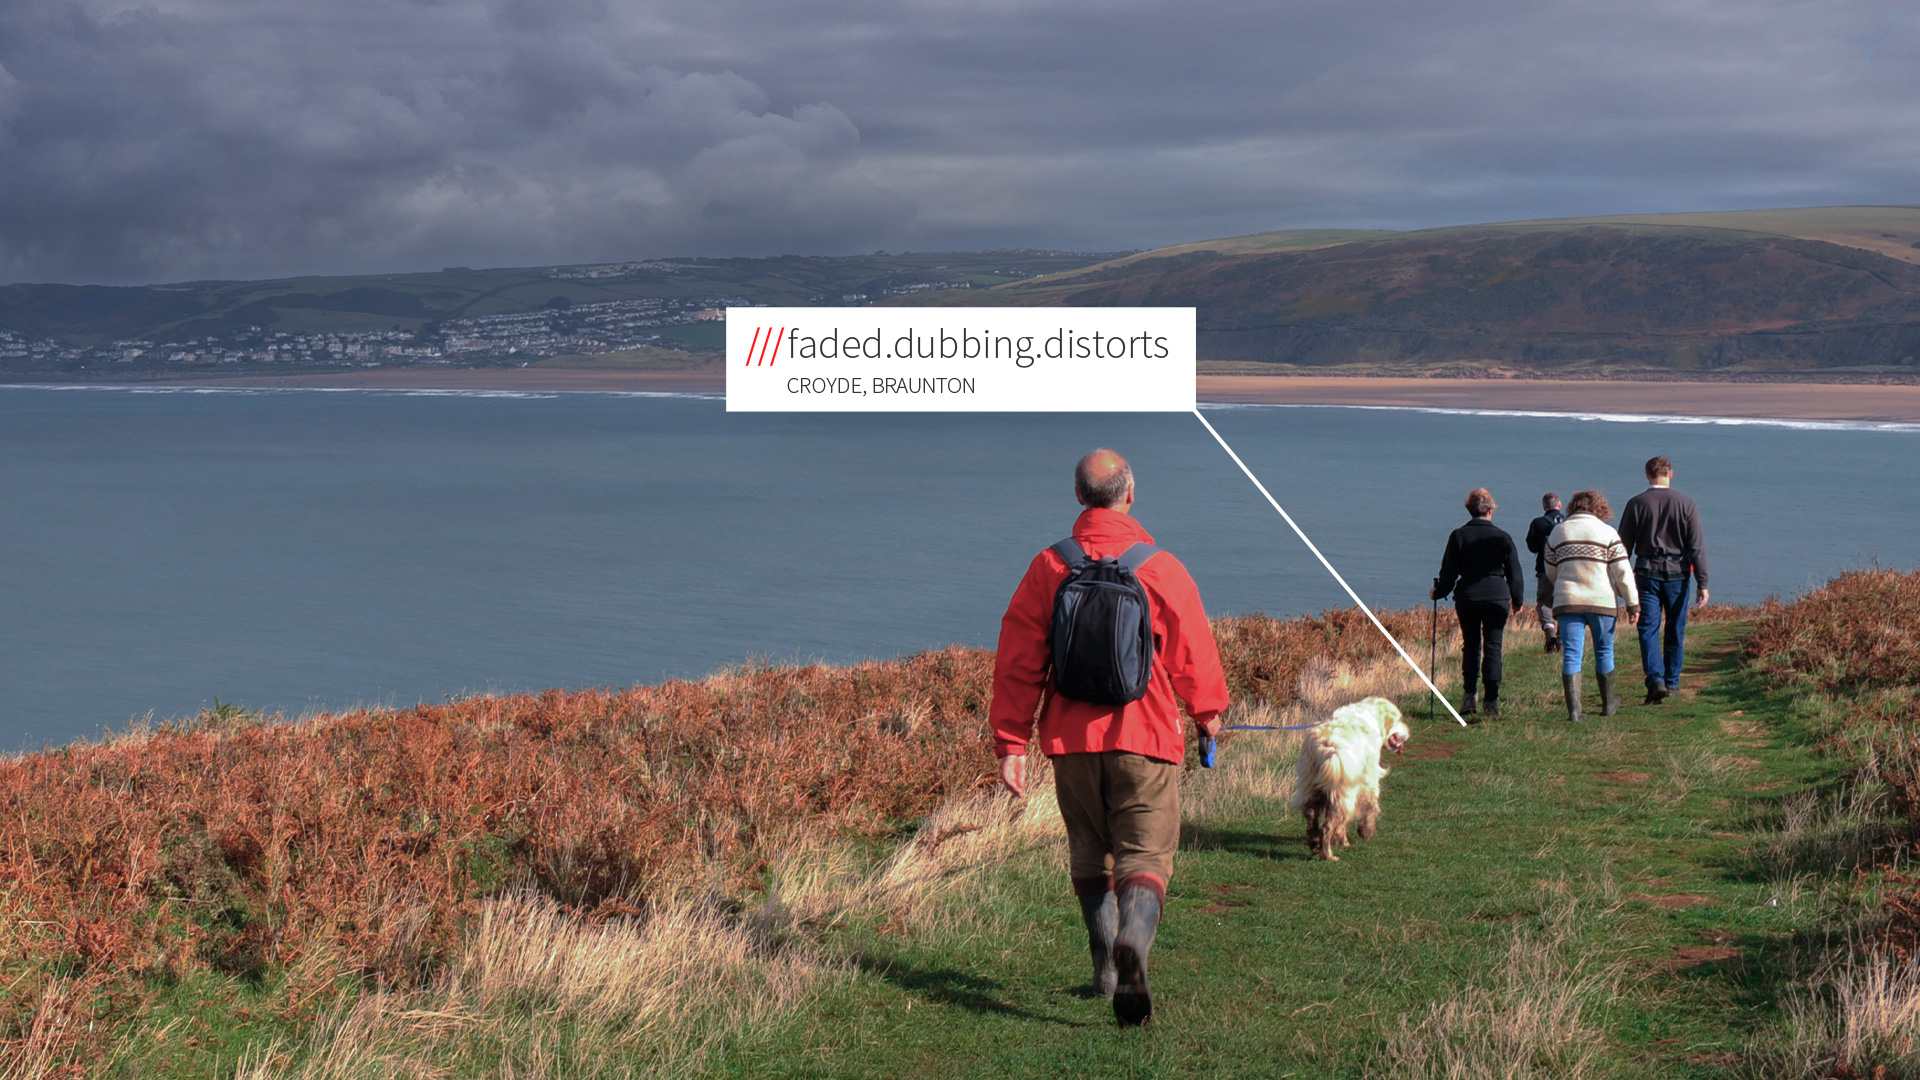 people walking dog on grassy path with sea in background at 3 word address faded.dubbing.distorts